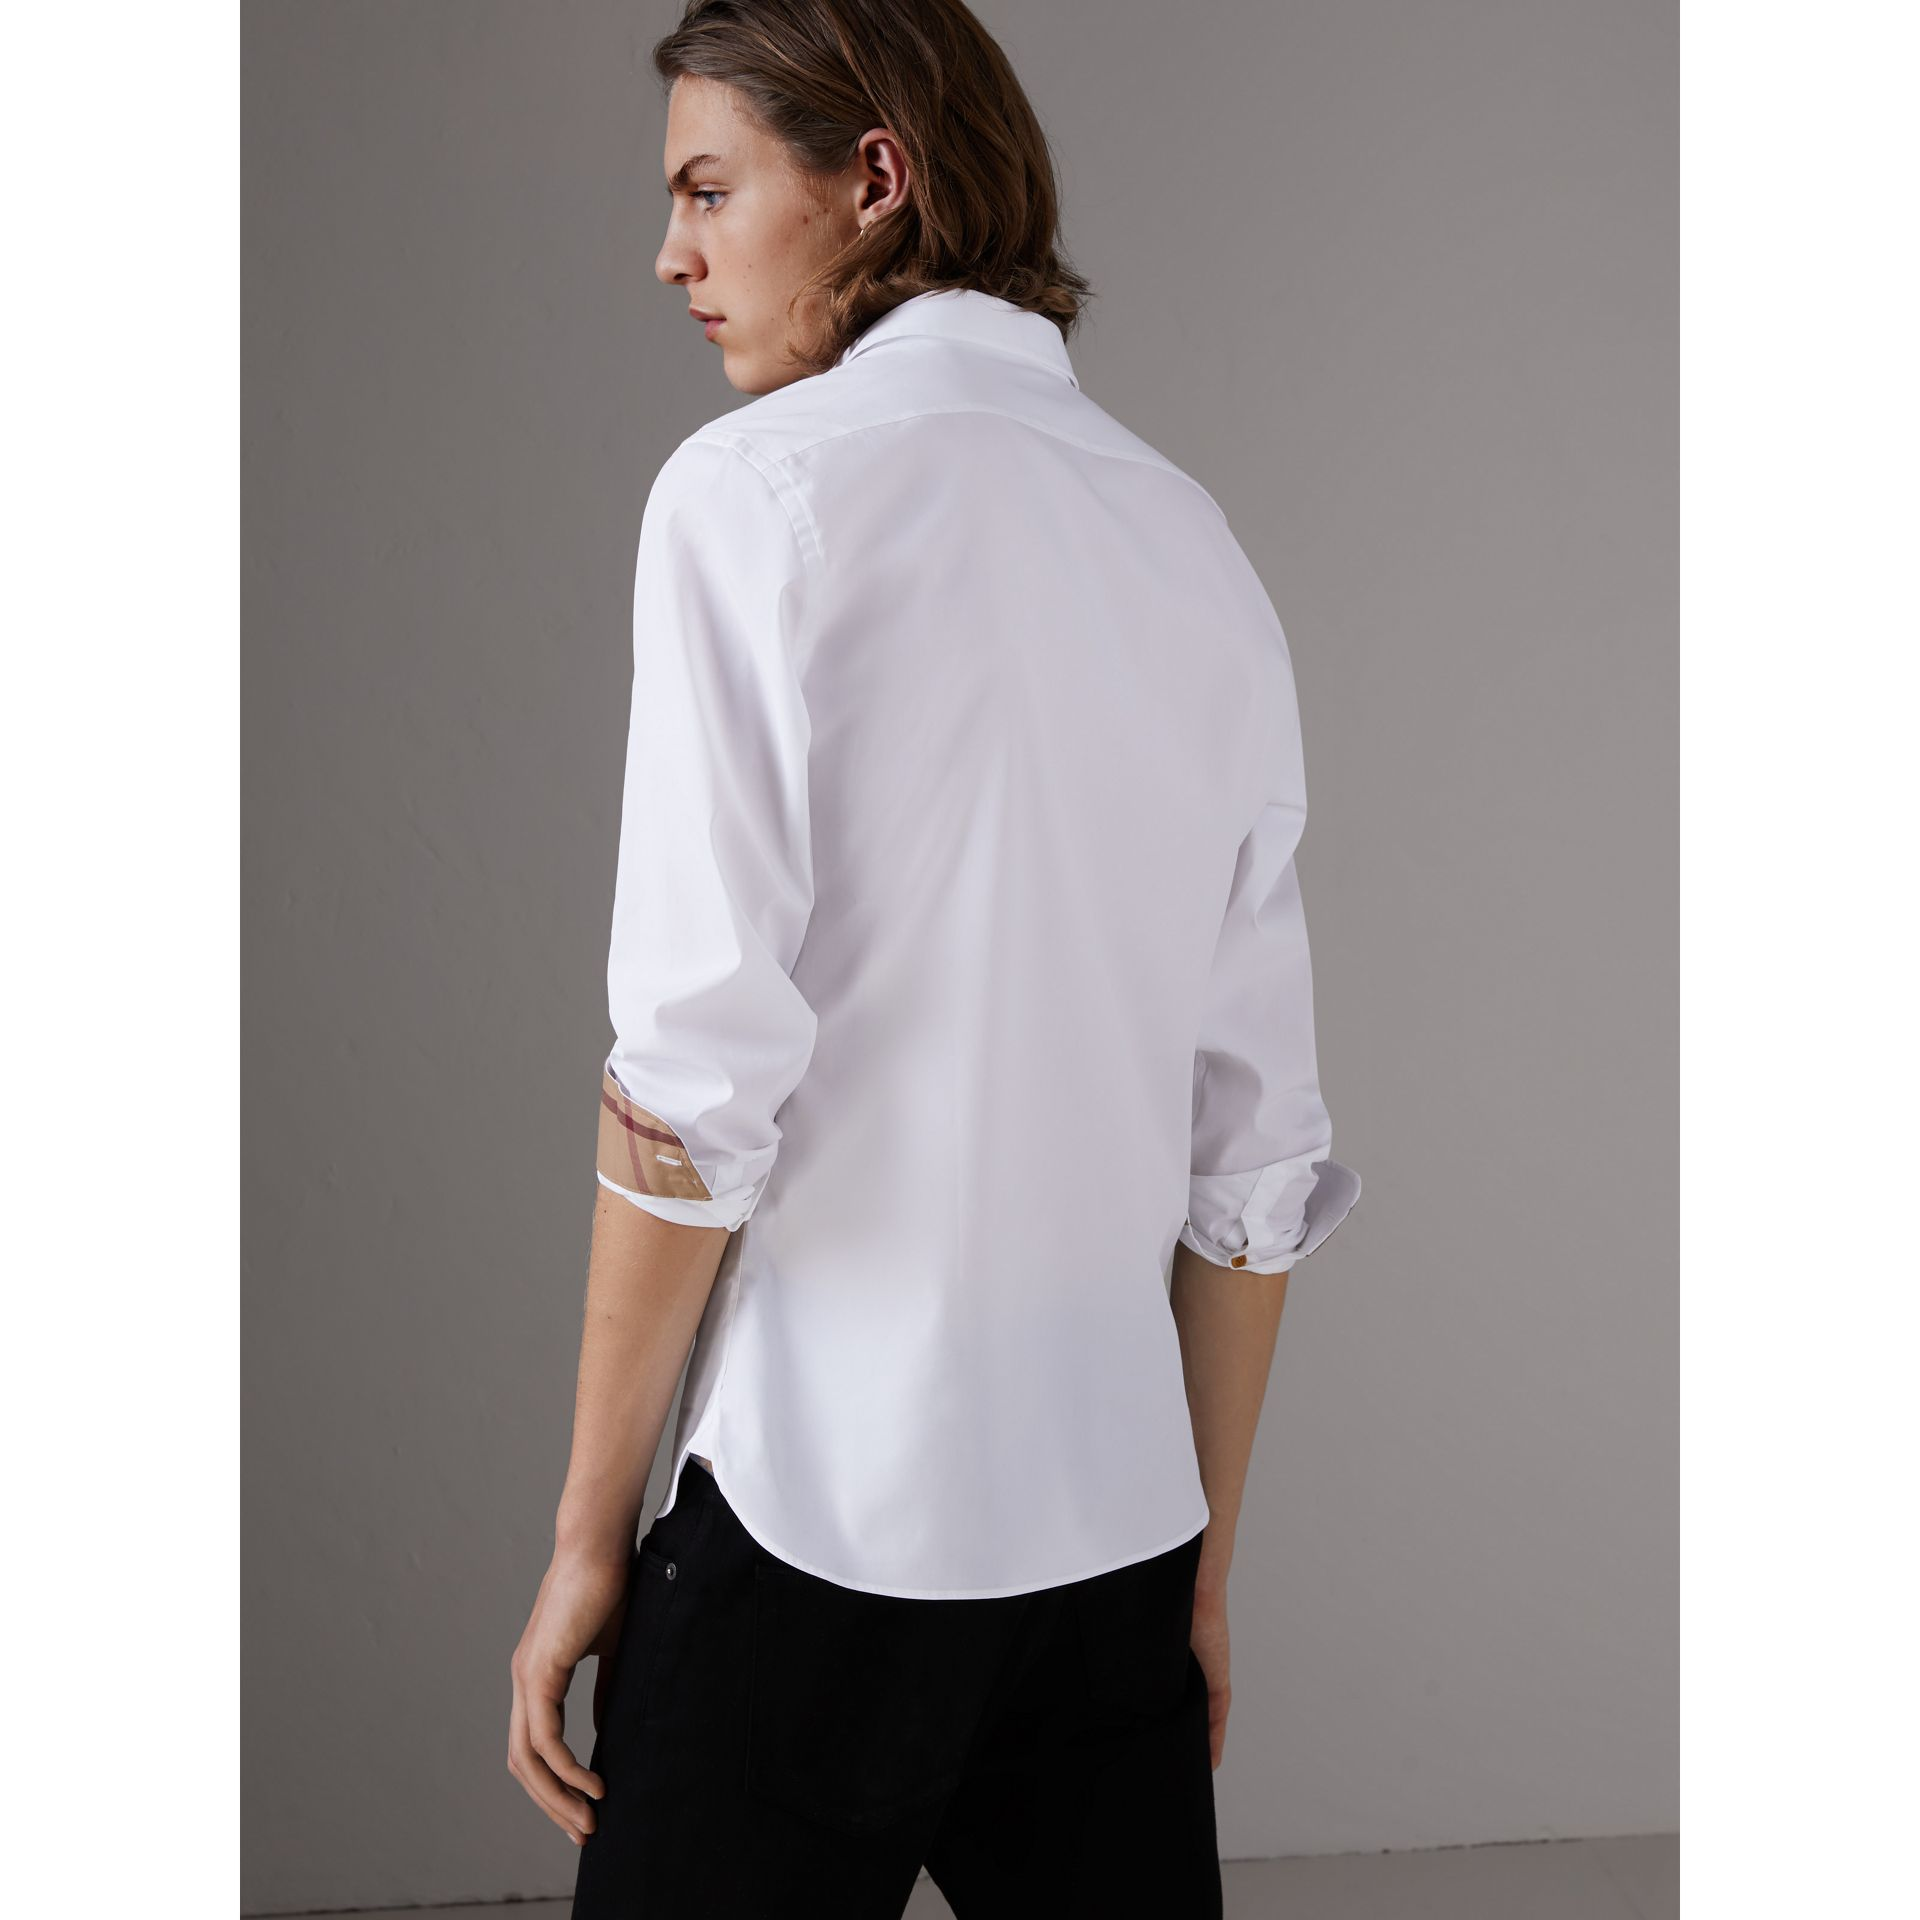 Resin Button Cotton Poplin Shirt in White - Men | Burberry - gallery image 3